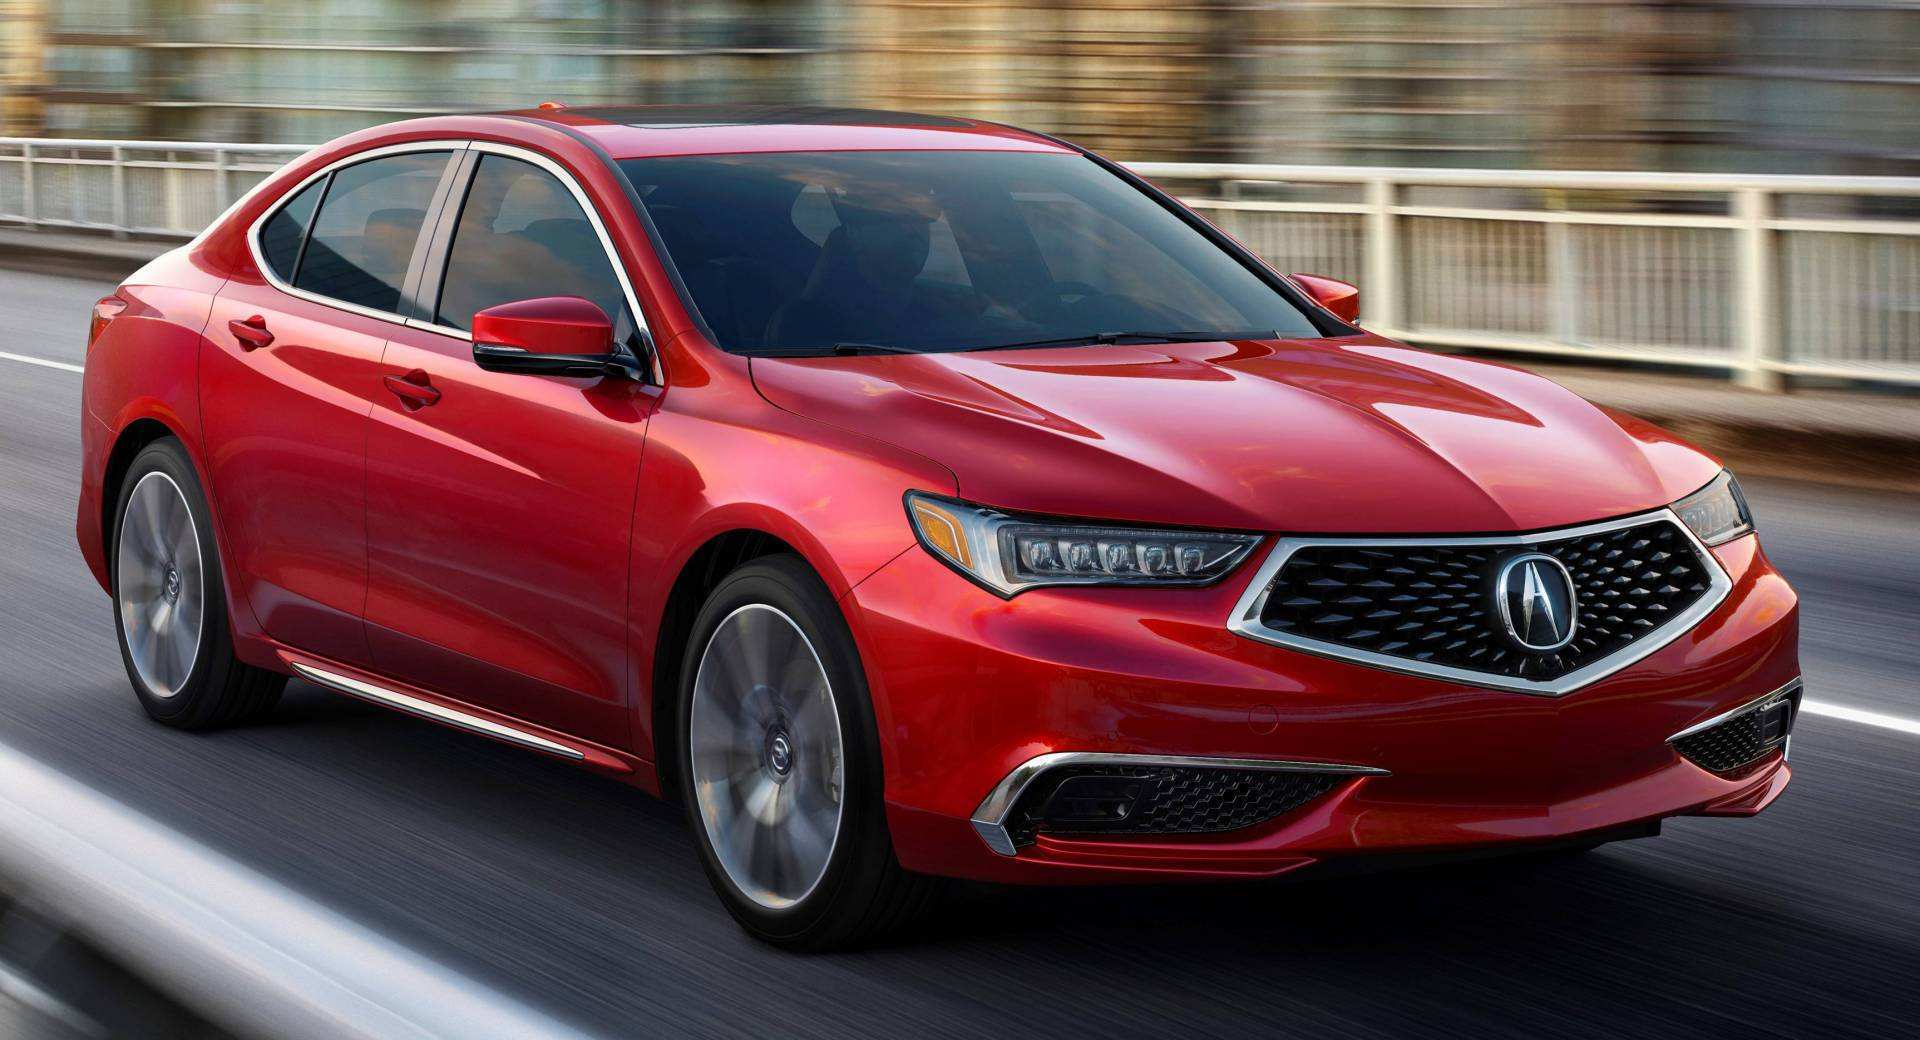 52 All New Acura Tlx Redesign 2020 First Drive